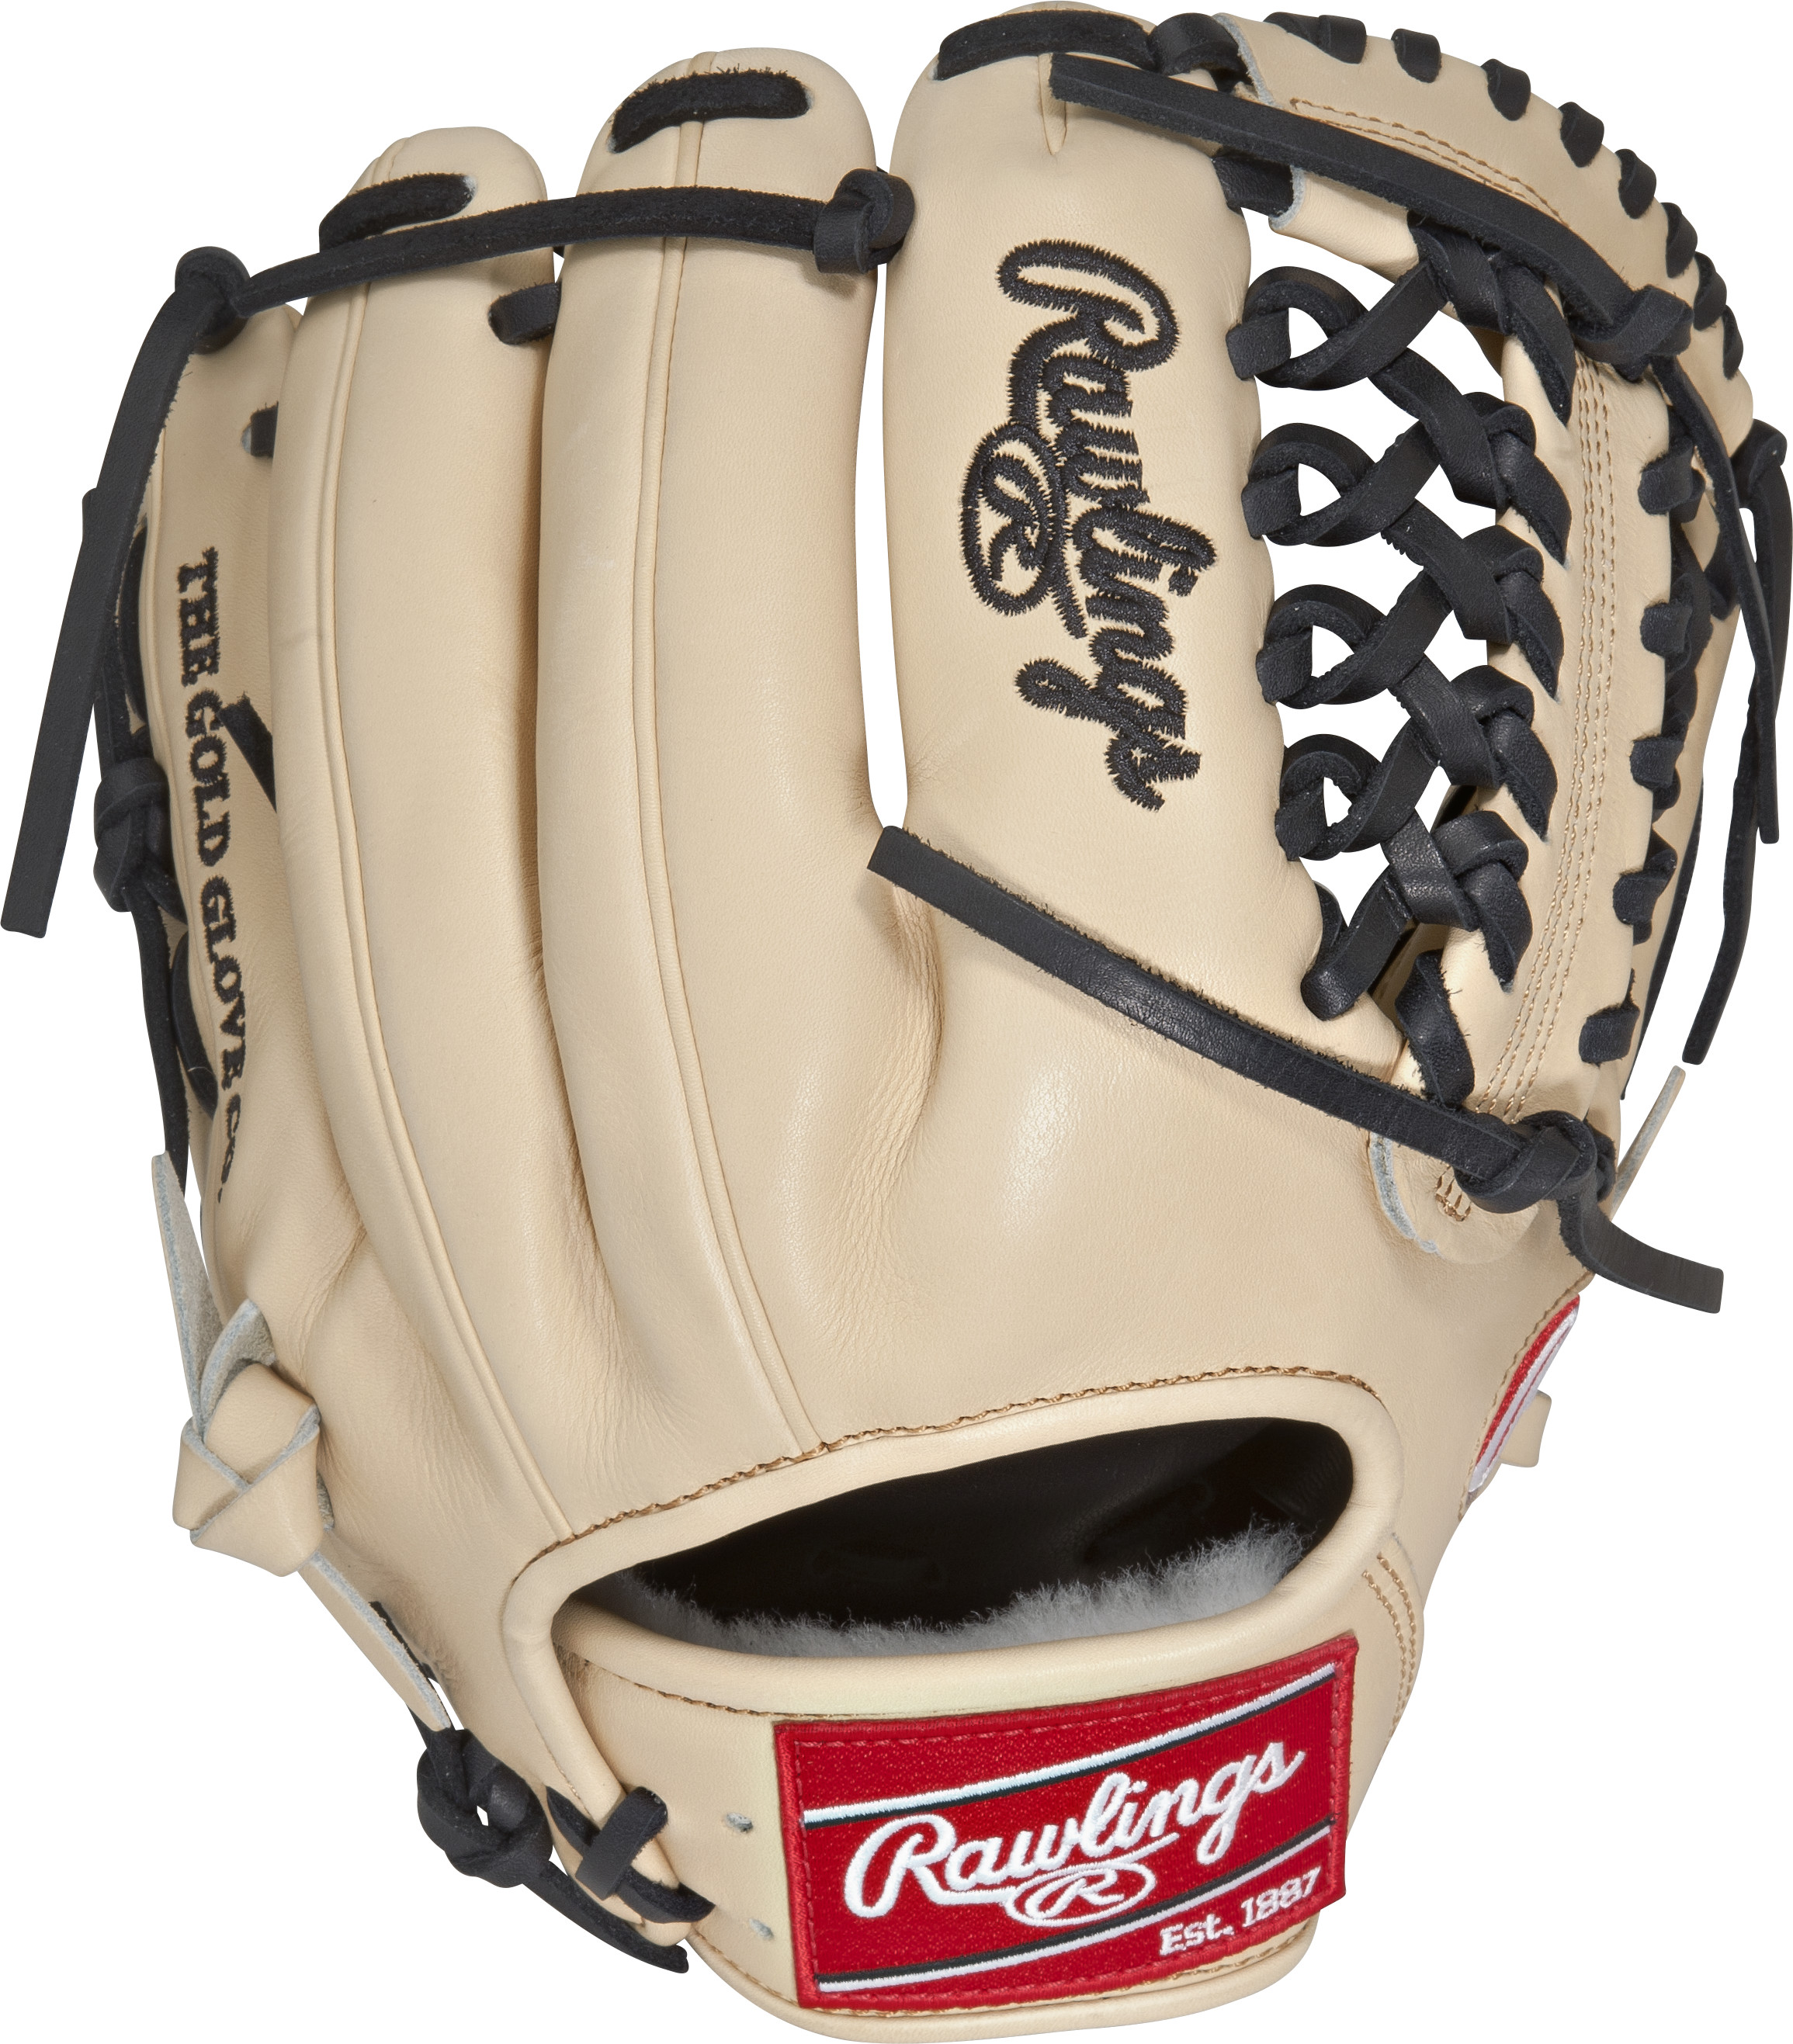 http://www.bestbatdeals.com/images/gloves/rawlings/PROS204-4C_back.jpg